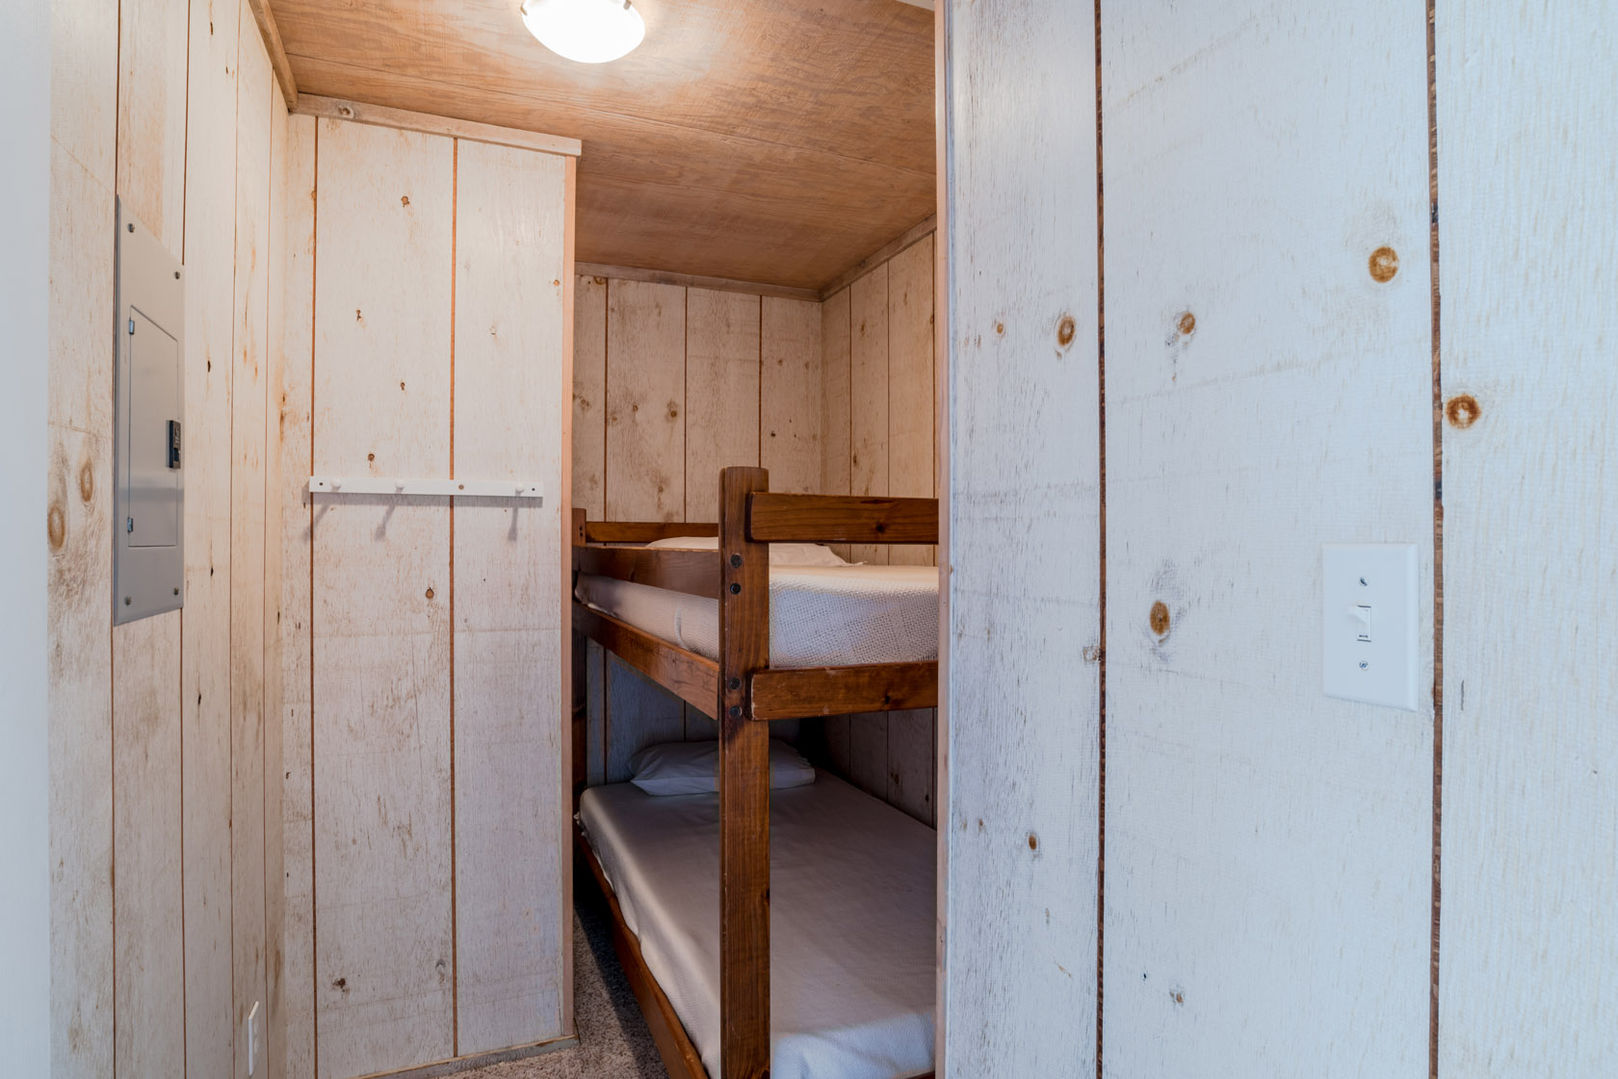 Small Room with Bunk Bed.